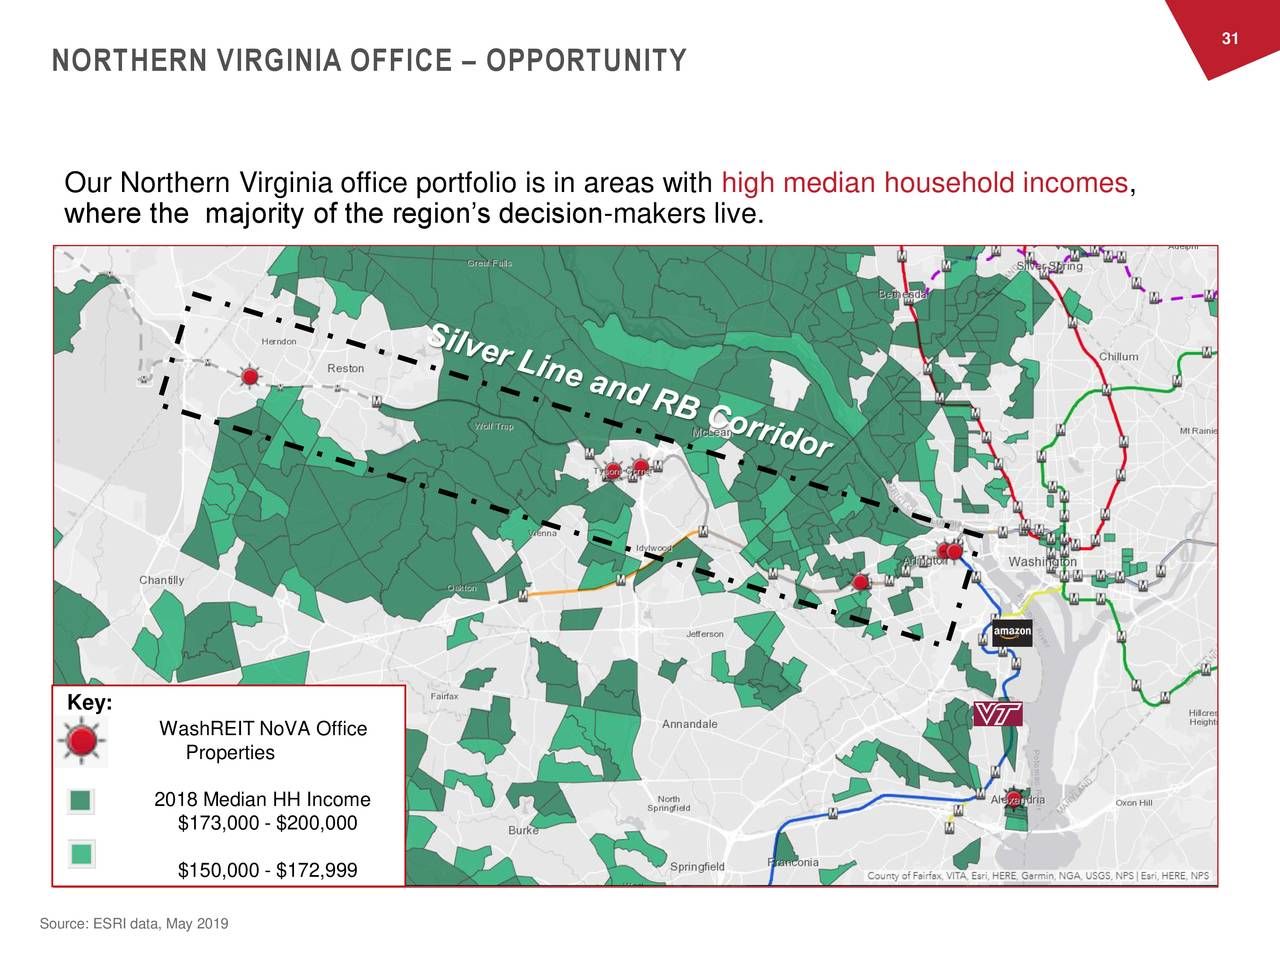 NORTHERN VIRGINIA OFFICE – OPPORTUNITY Our Northern Virginia office portfolio is in areas with high median household incomes, where the majority of the region's decision-makers live. Key: WashREIT NoVA Office Properties 2018 Median HH Income $173,000 - $200,000 $150,000 - $172,999 Source: ESRI data, May 2019